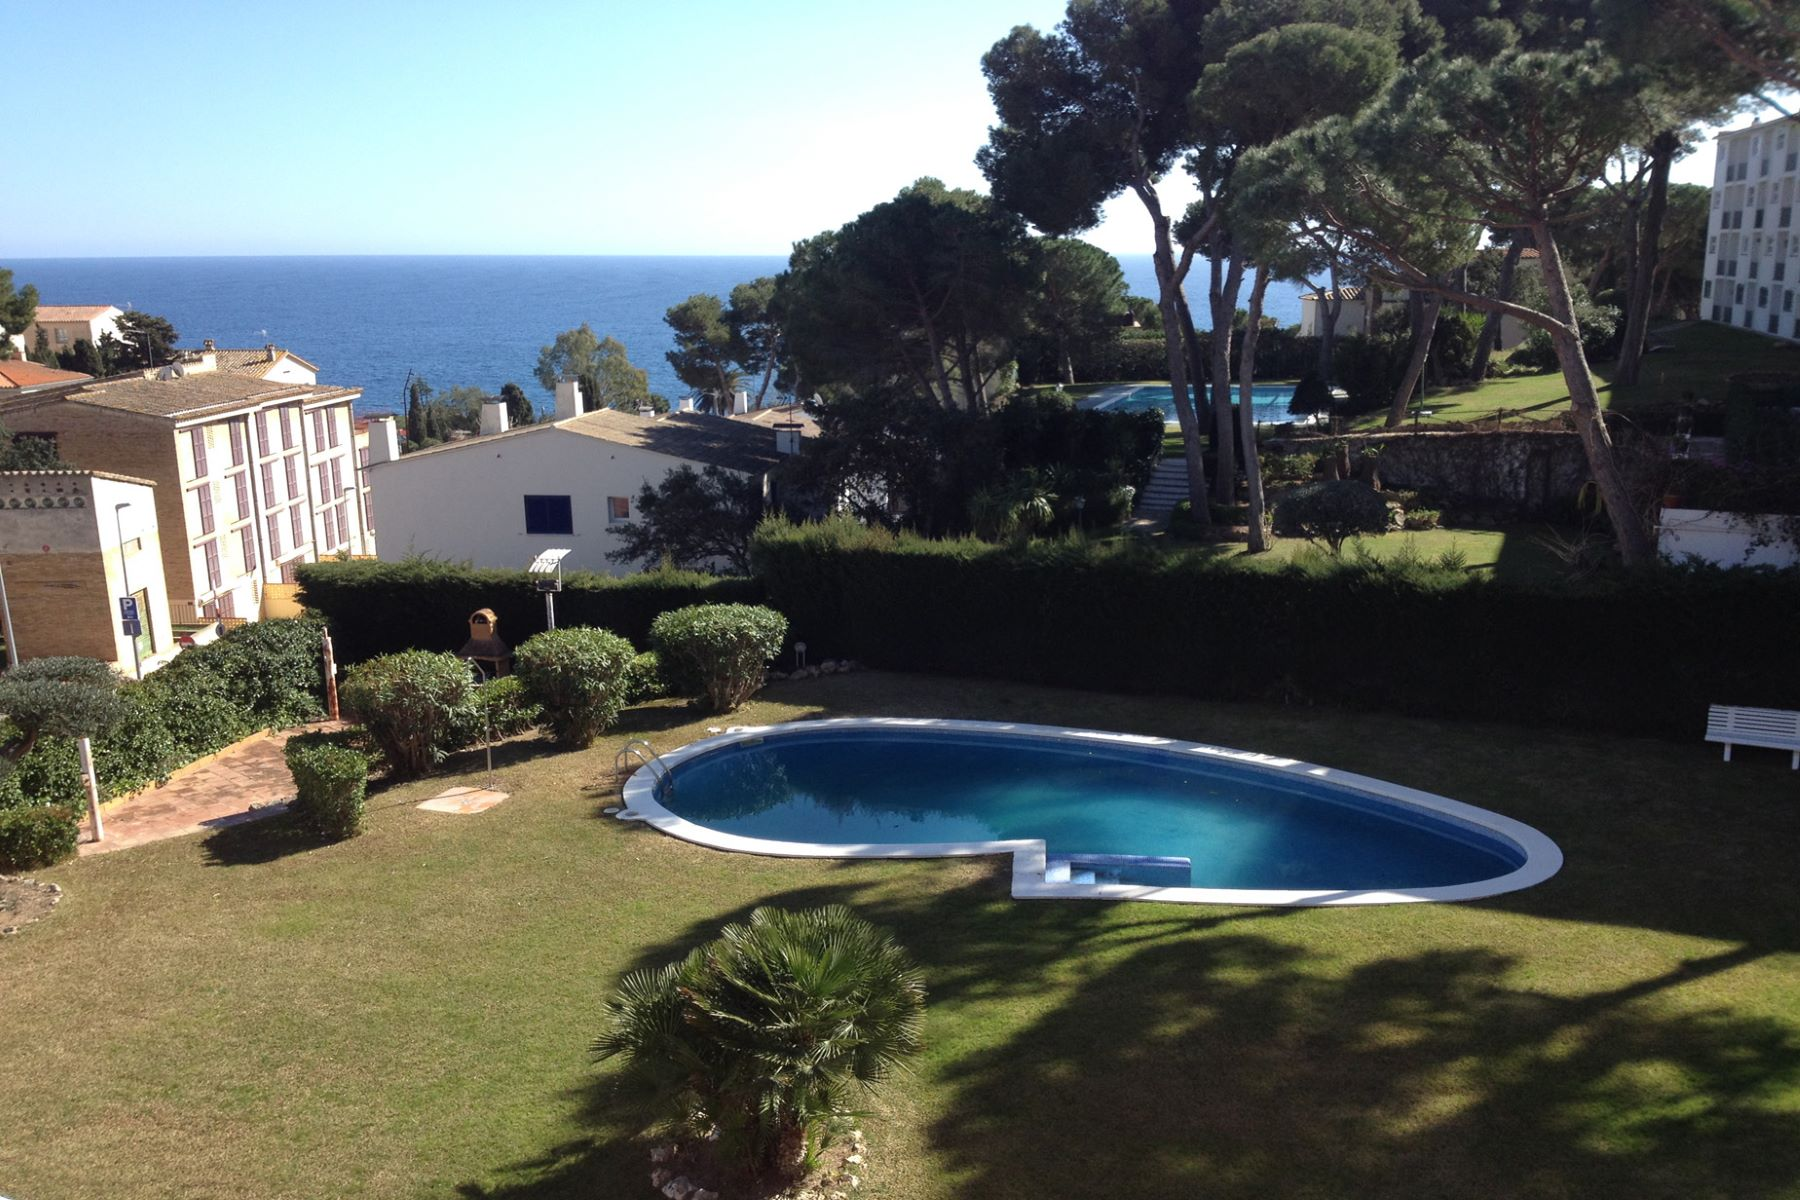 Single Family Home for Sale at Beautiful semidetached house close to the beach and services in Calella Calella De Palafrugell, Costa Brava, 17210 Spain